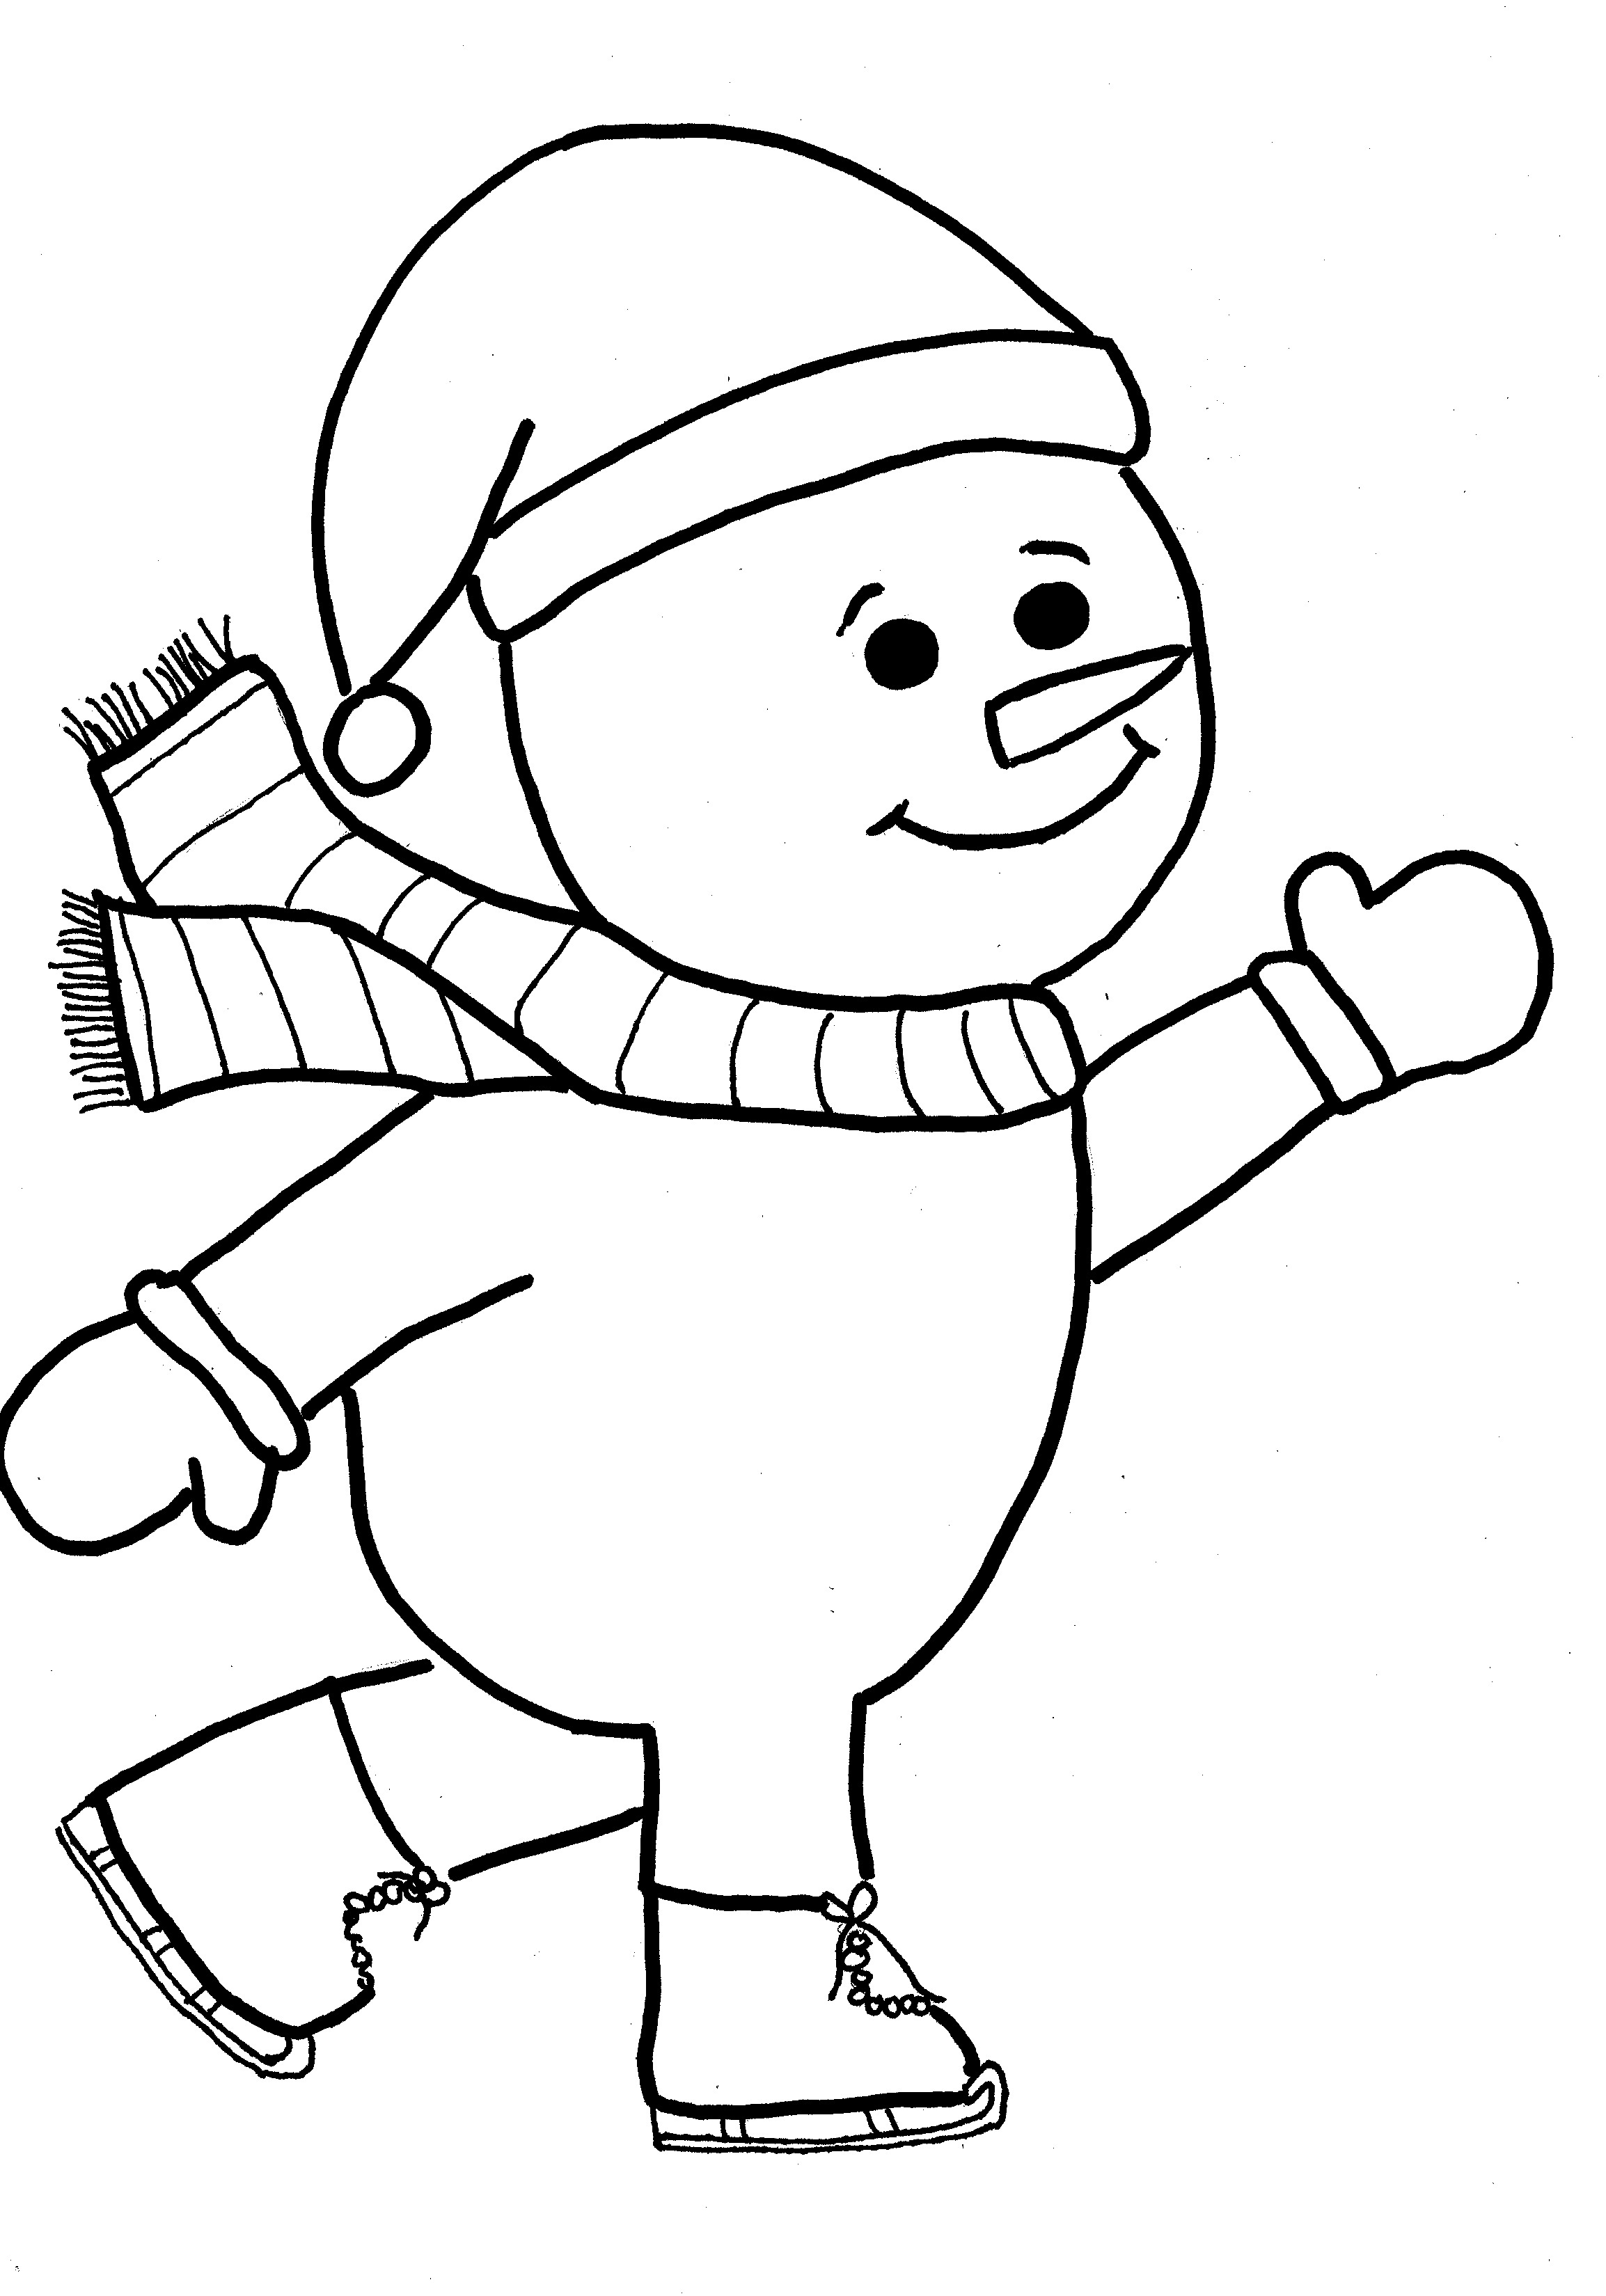 Snowman | Free Printable Templates & Coloring Pages | FirstPalette.com | 3299x2307